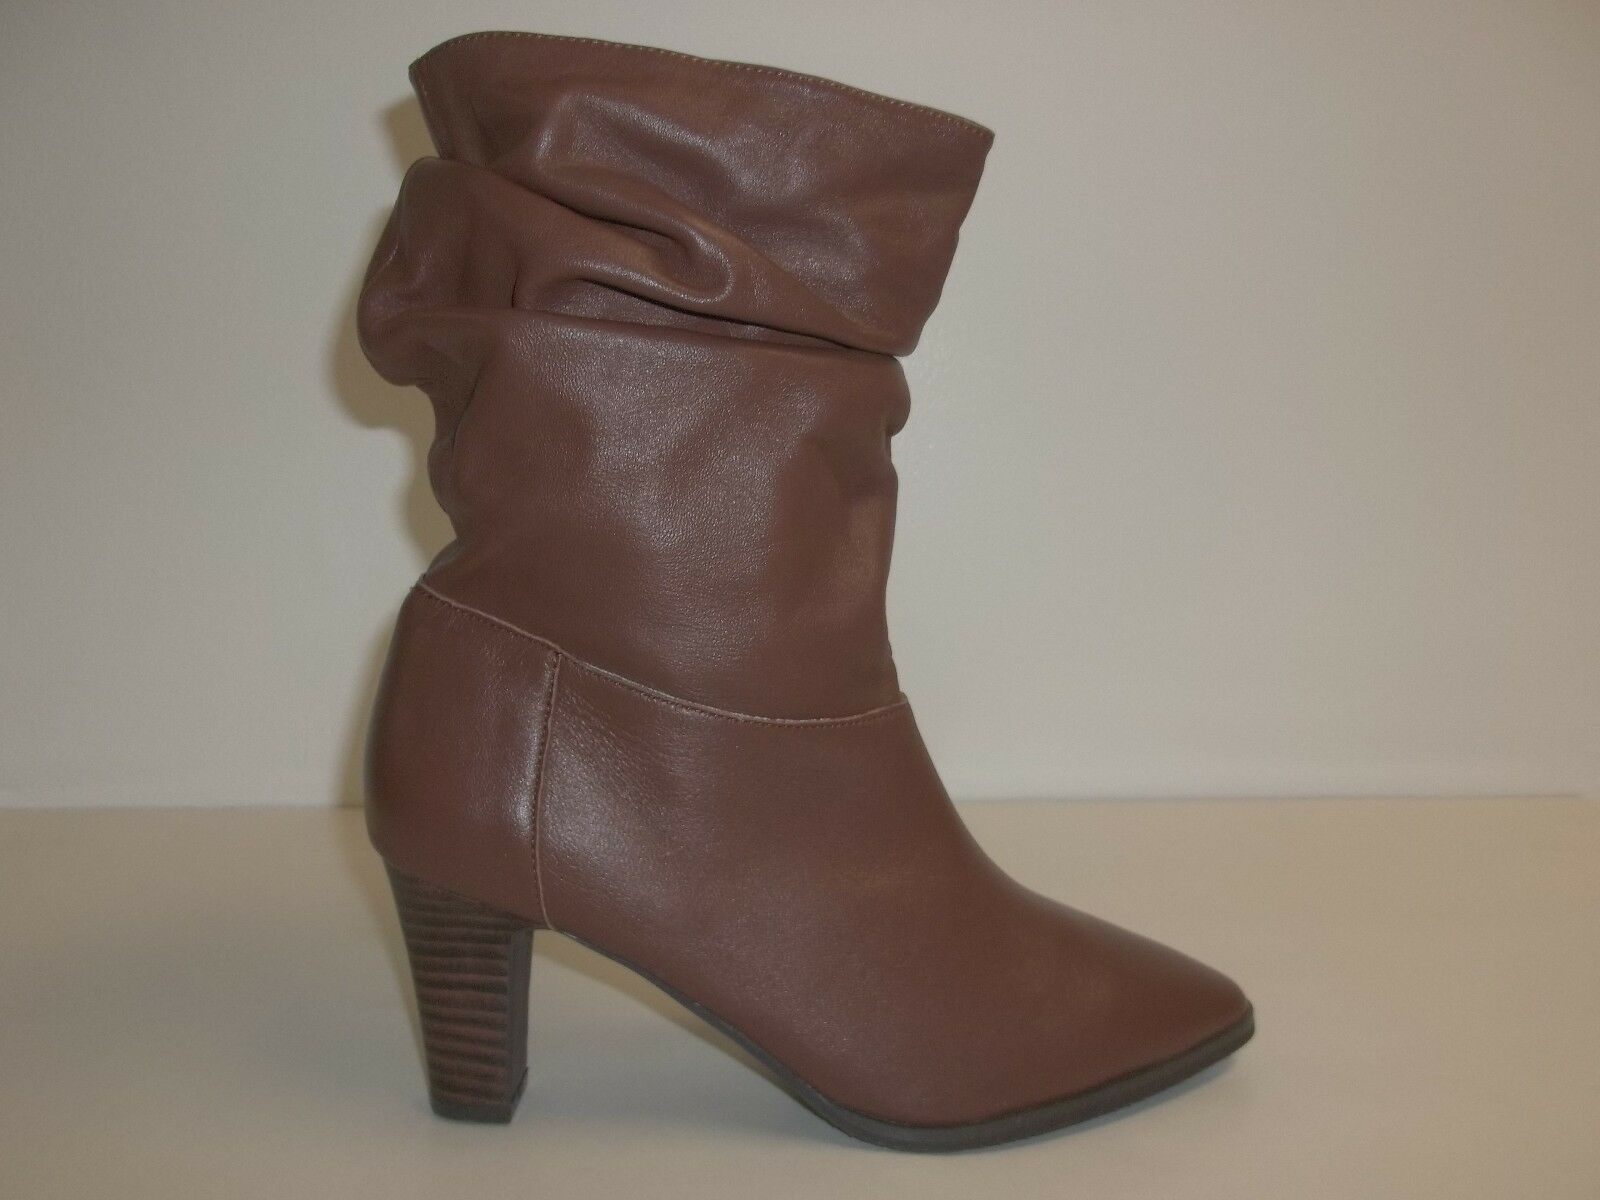 Adrianna Papell Size 9 M NOELLE Brown Pelle Mid Calf Stivali New Donna Shoes